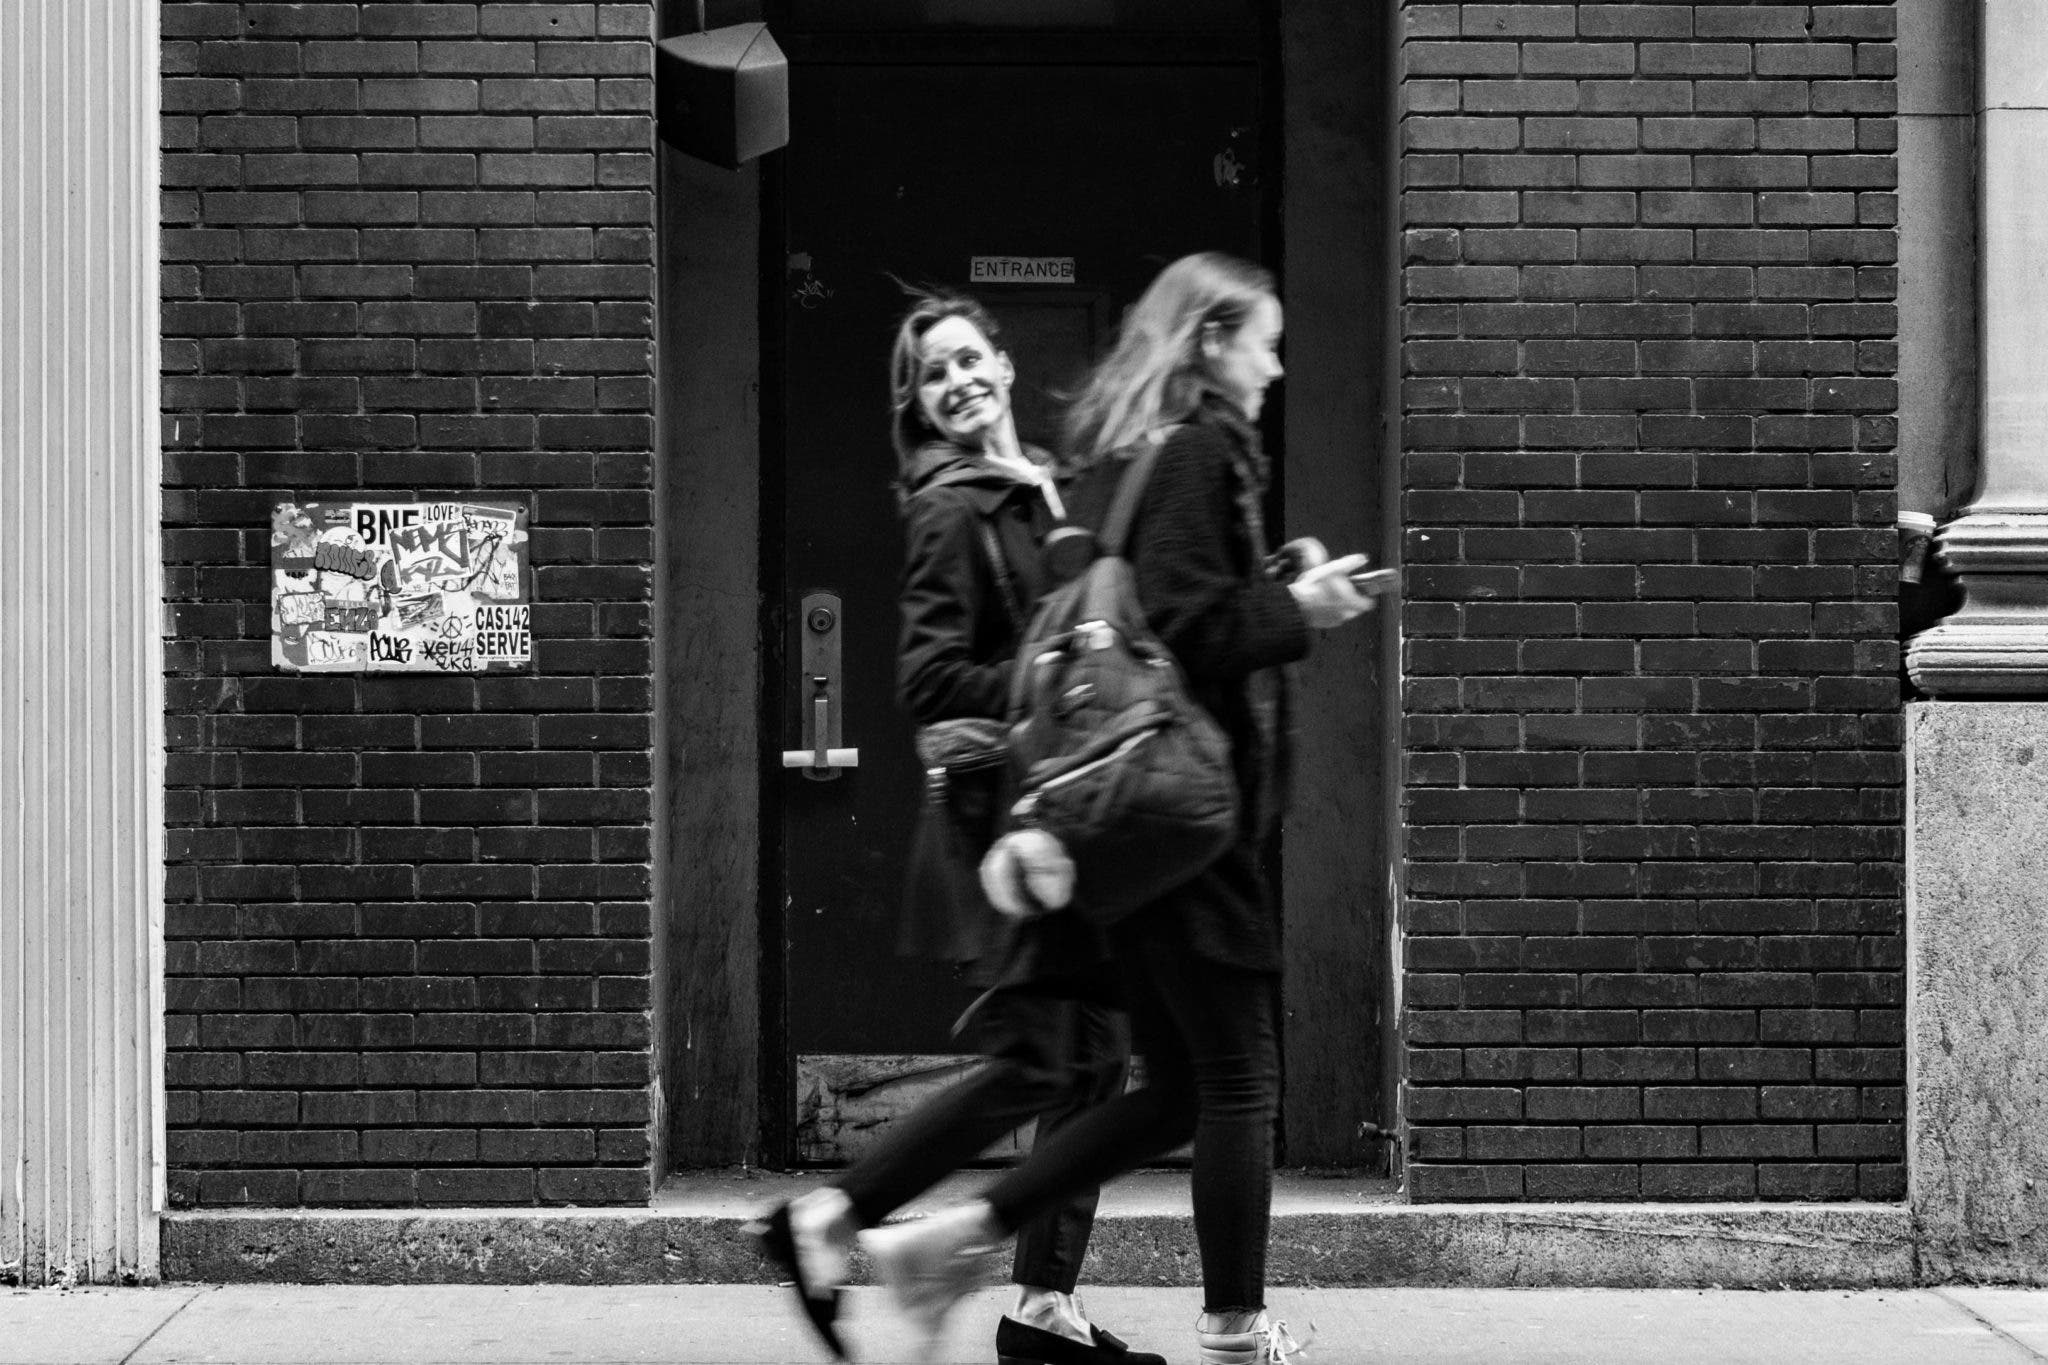 Vince Alongi: Capturing Street Photography Scenes in Black and White